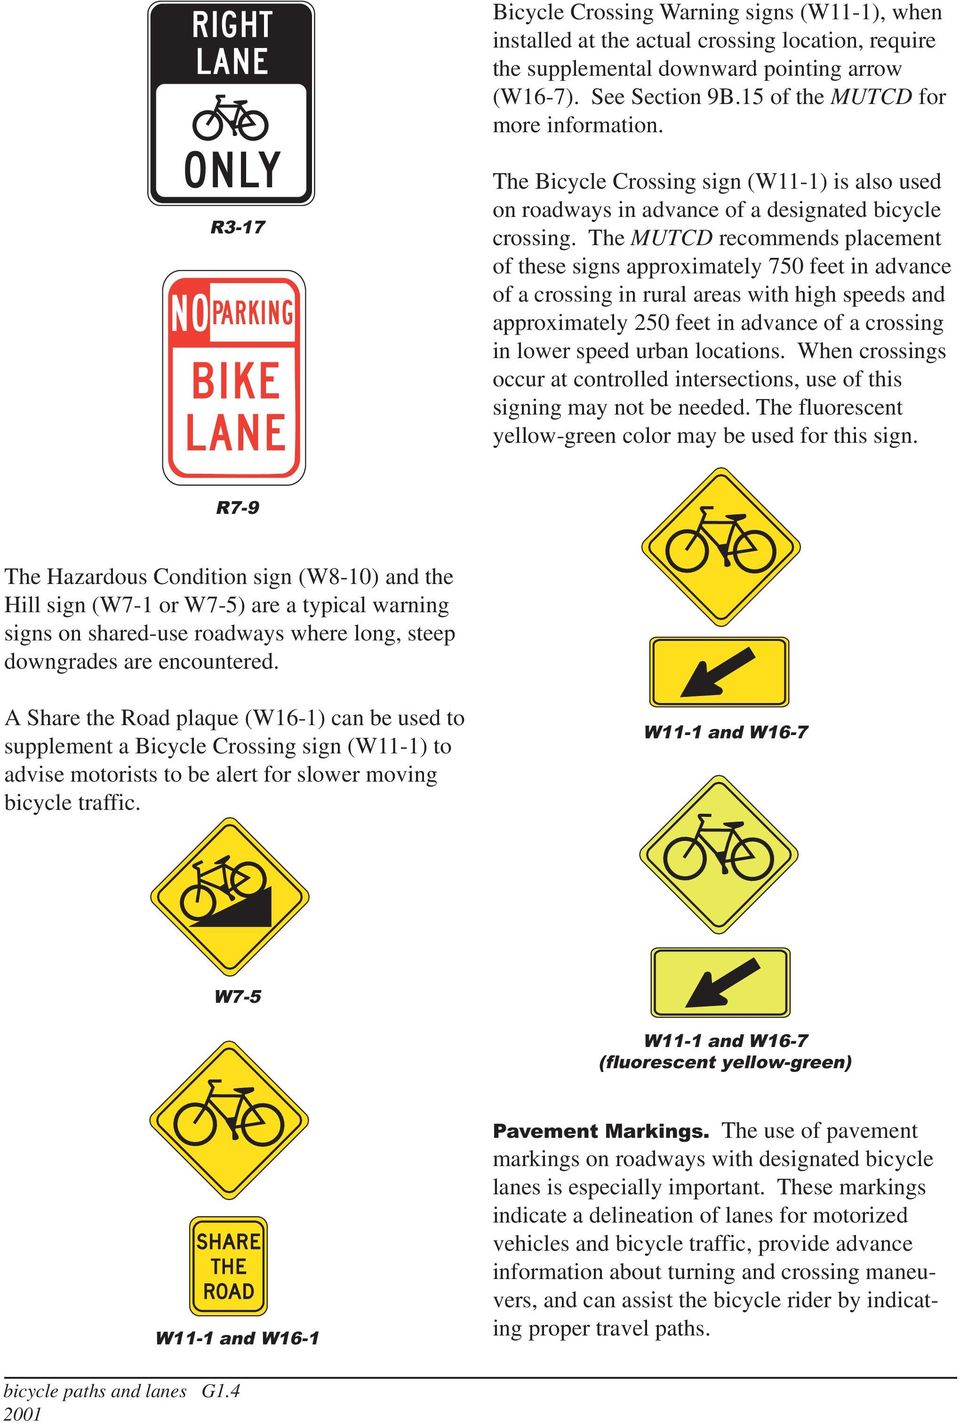 The MUTCD recommends placement of these signs approximately 750 feet in advance of a crossing in rural areas with high speeds and approximately 250 feet in advance of a crossing in lower speed urban